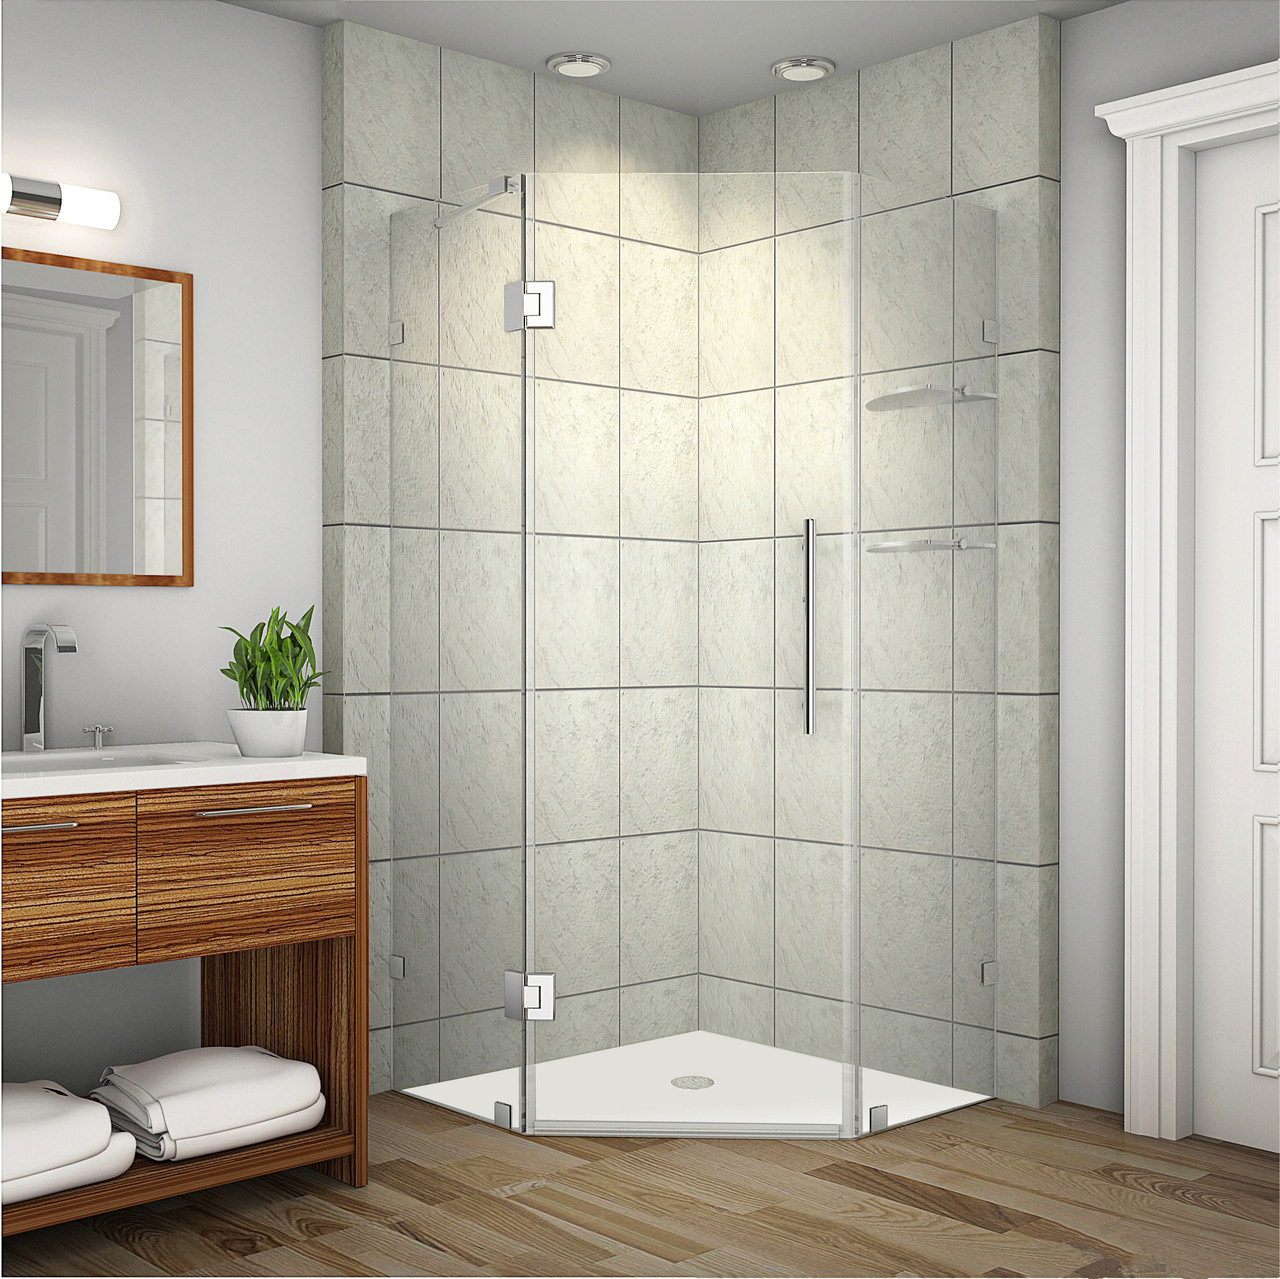 Details About Aston Global Neoscape Gs 34 X 34 72 Frameless Neo Angle Glass Hinged Shower Door